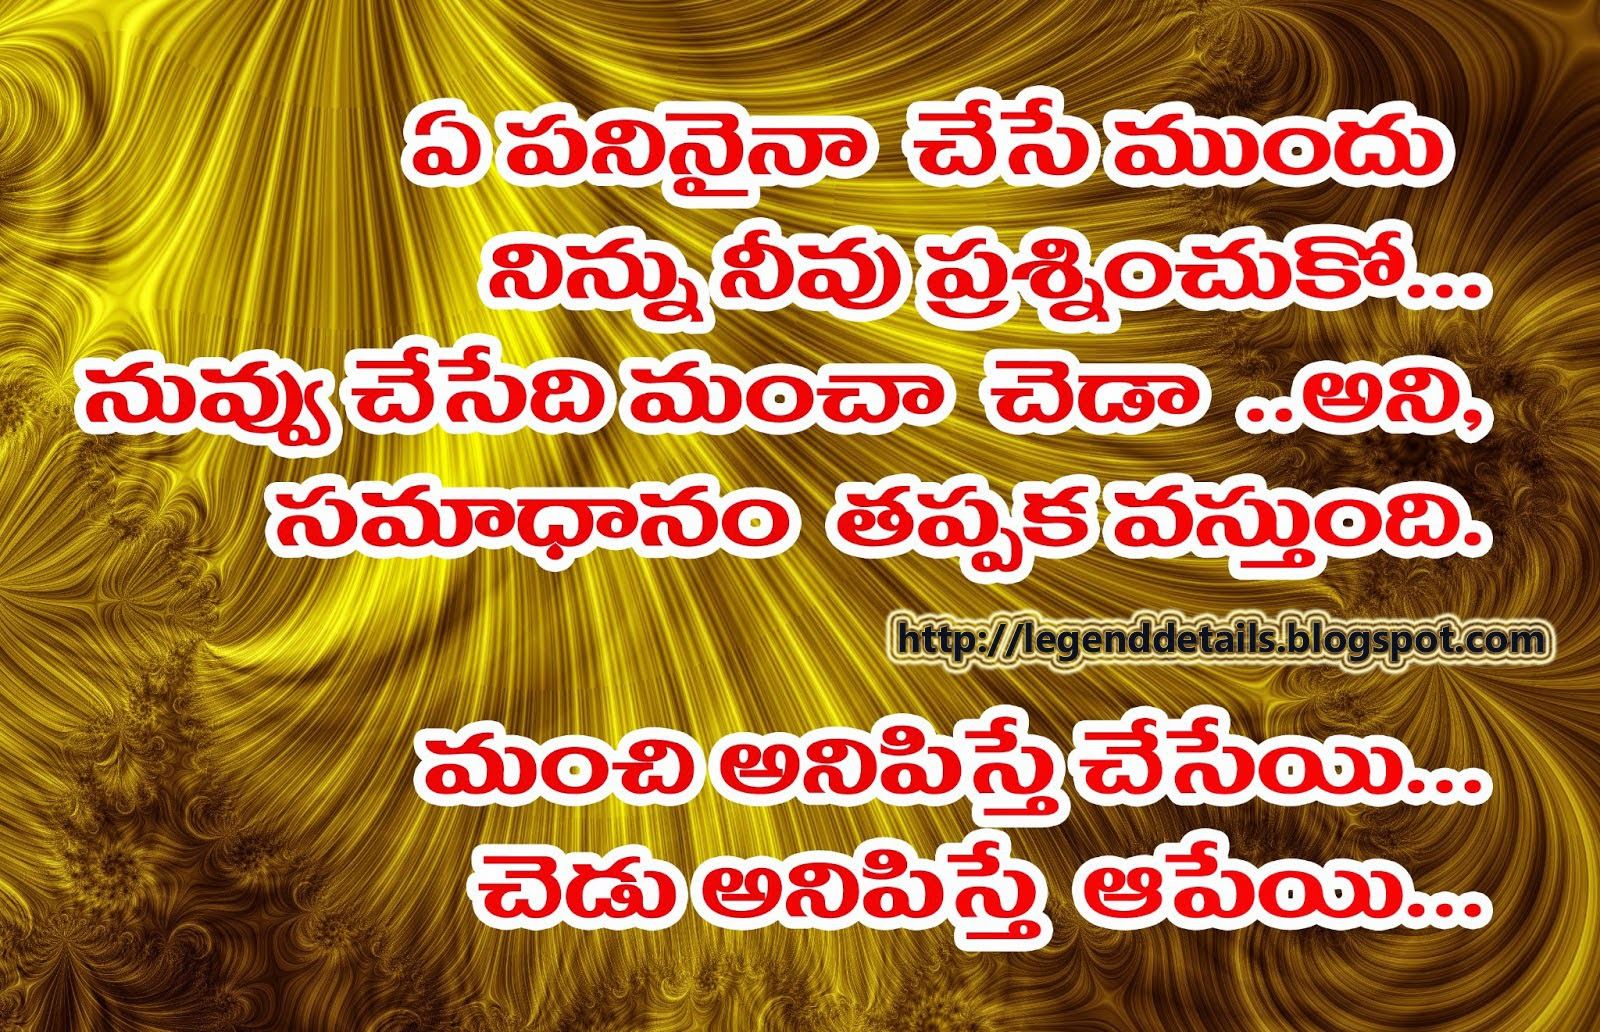 World Best Life Quotes In Telugu Telugu Life Quotes With Images